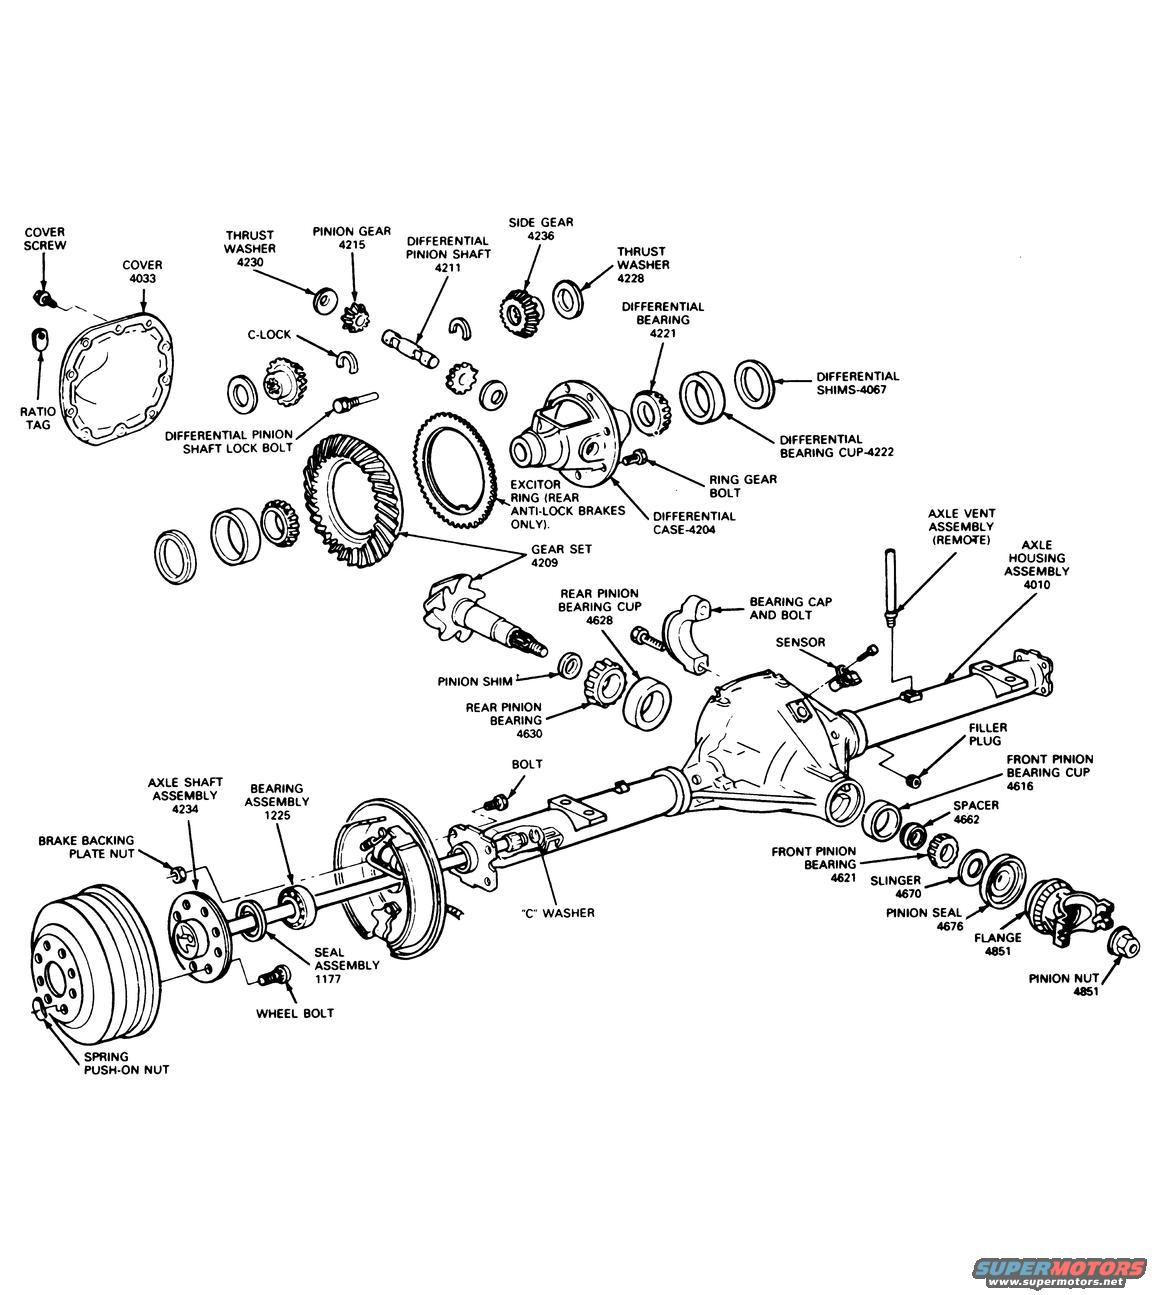 Ford 1025 Rear End Diagram Manual Of Wiring Drum Brake Truck Enthusiasts Forums Sterling 10 25 Rh Trucks Com